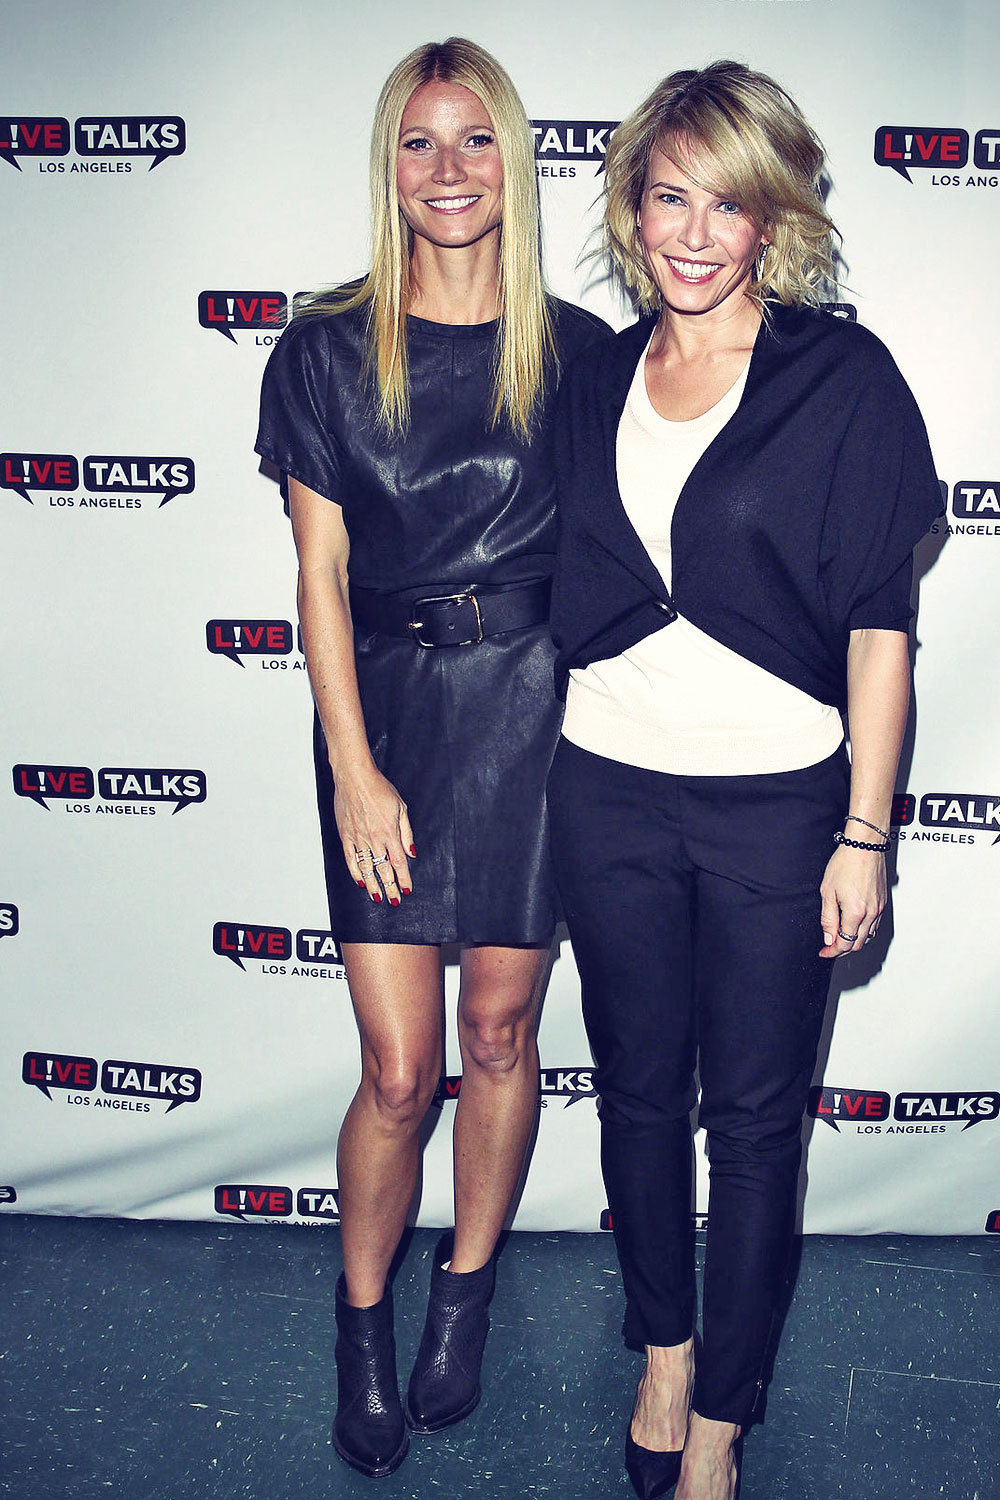 Gwyneth Paltrow poses at the Live Talks Los Angeles